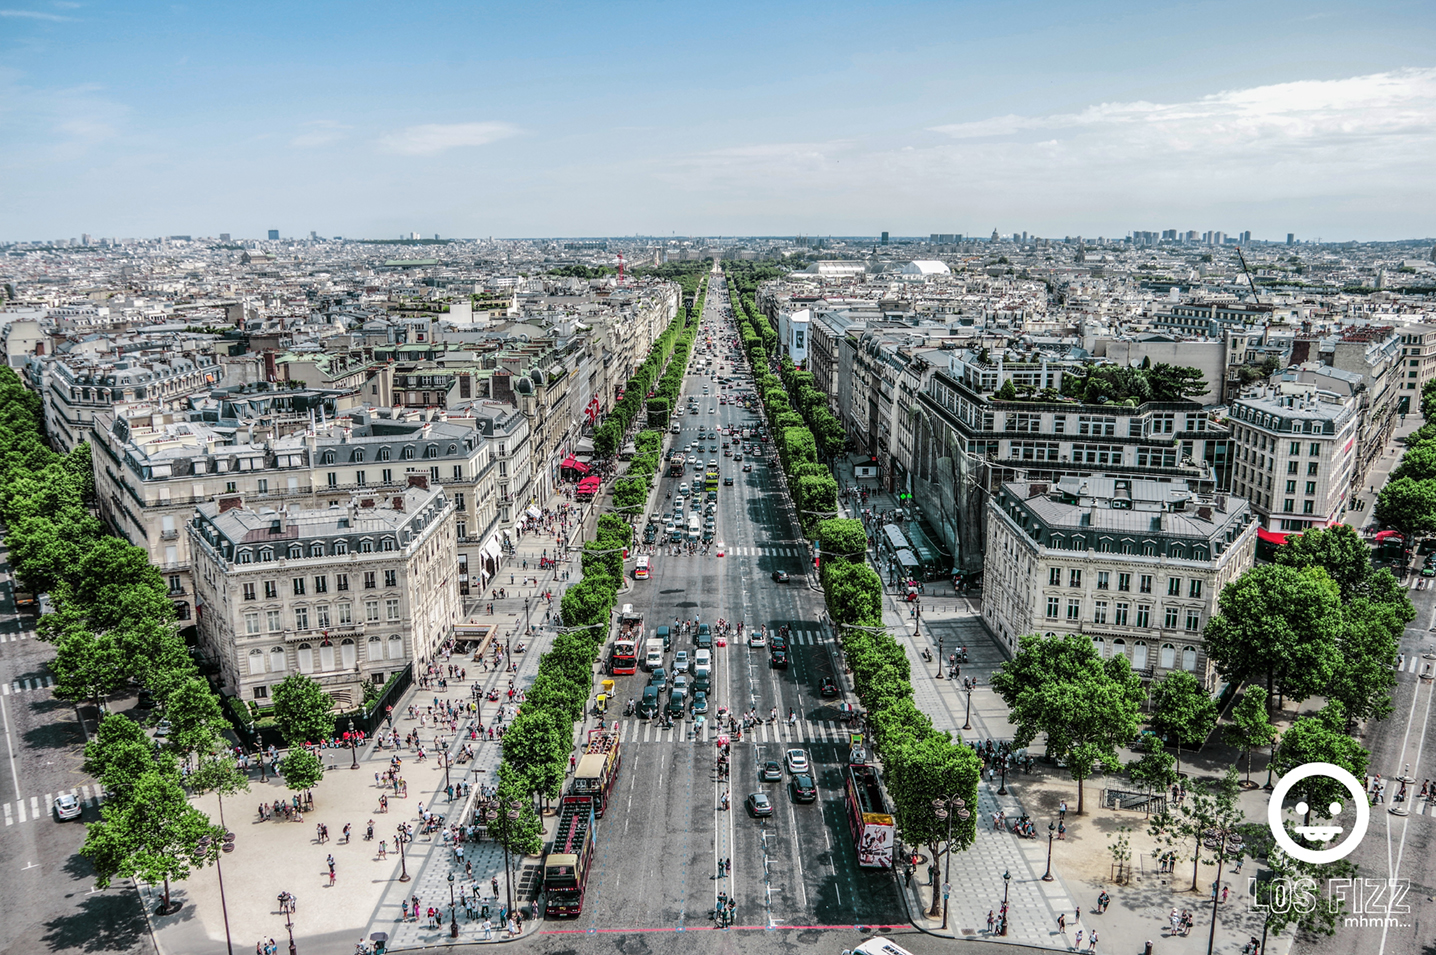 View from the top of the Arc De Triomphe in Paris, France. Photo By LosFizz.